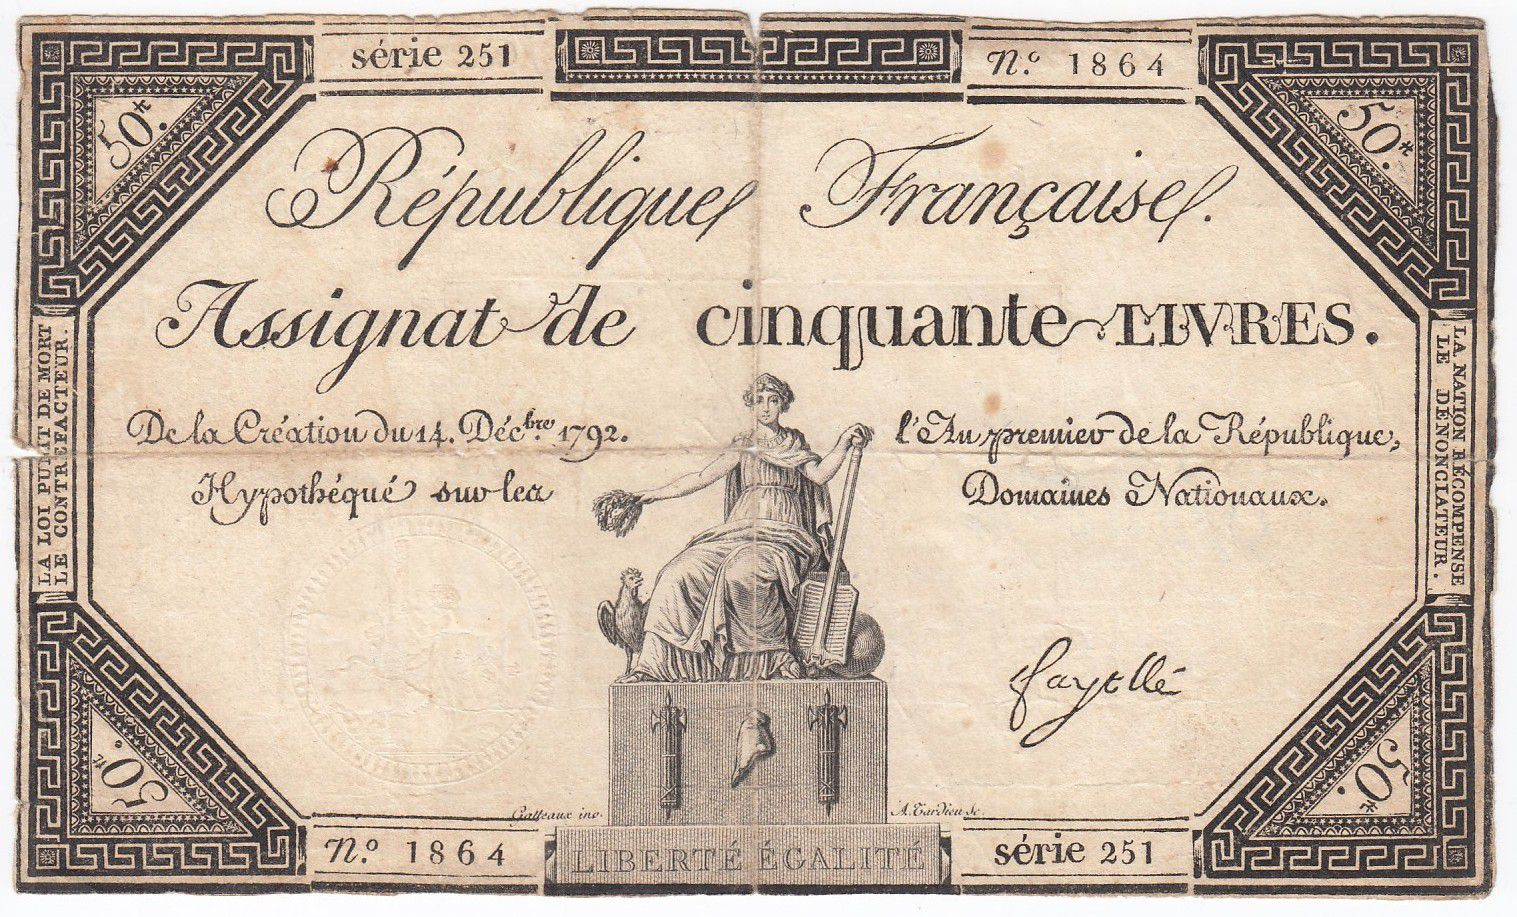 France 50 Livres France assise - 14-12-1792 - Sign. Fayolle - TB